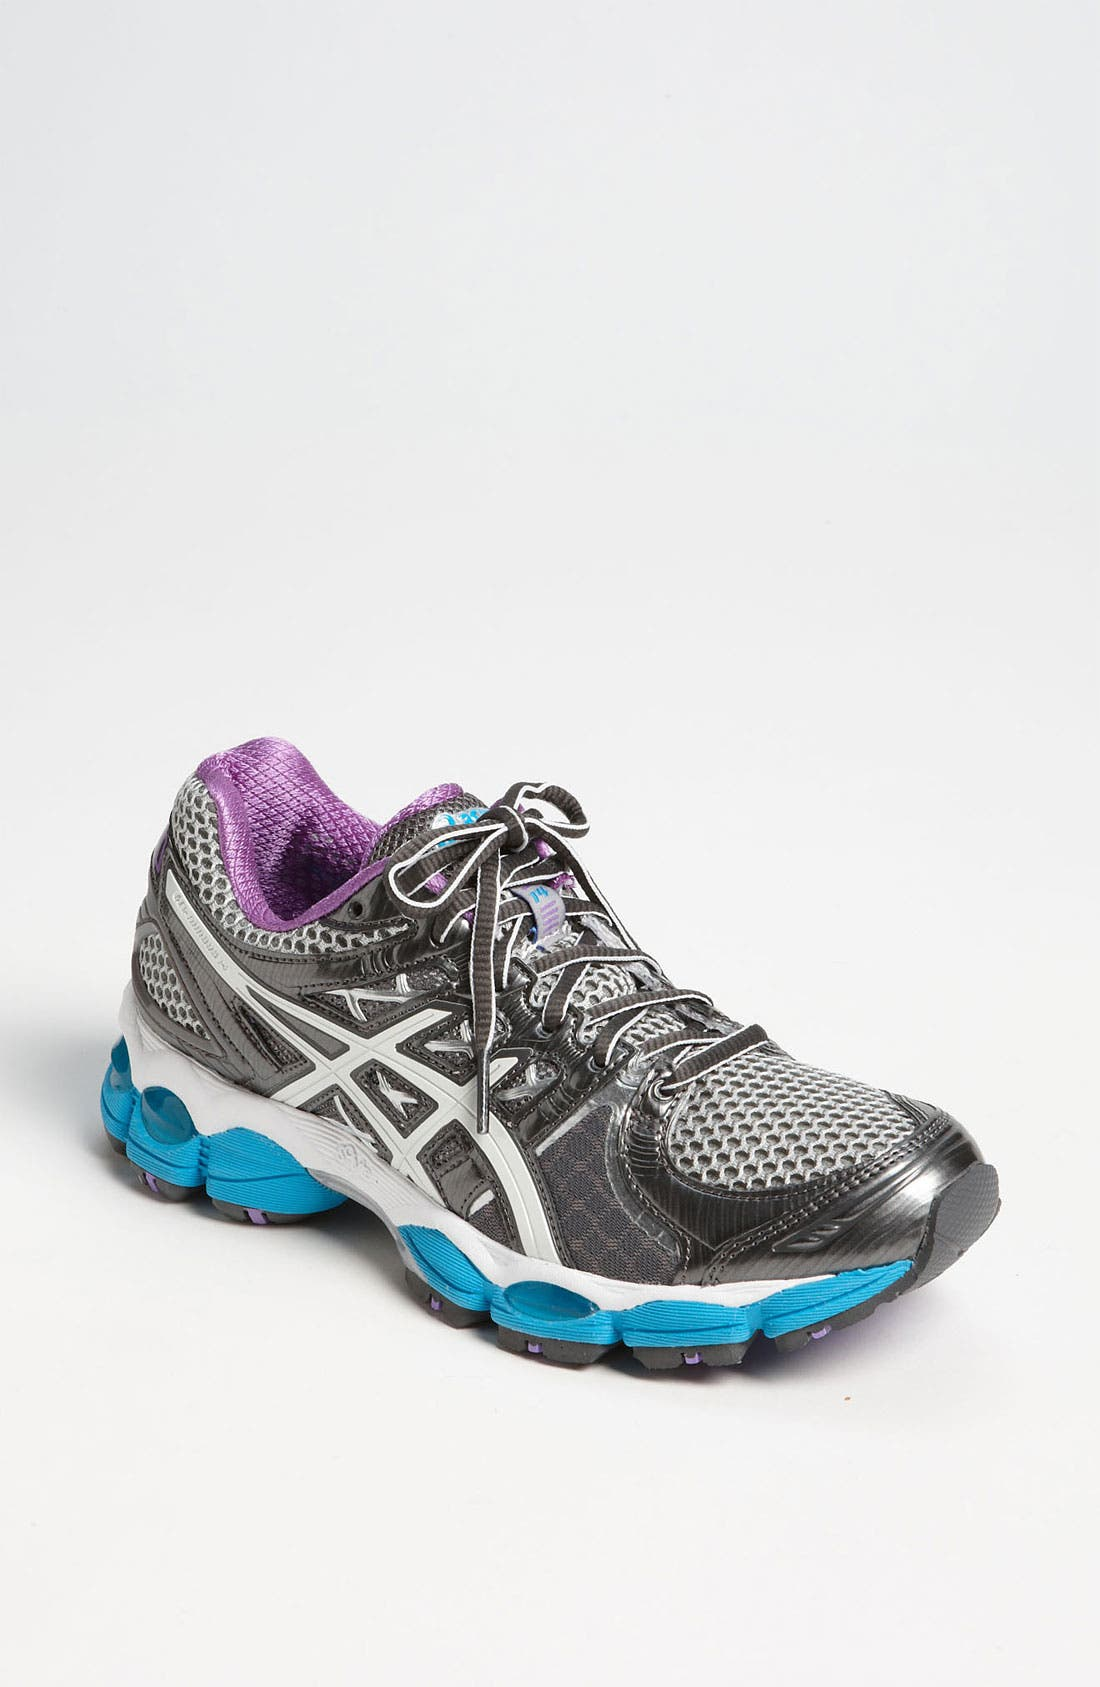 Main Image - ASICS® 'GEL-Nimbus 14' Running Shoe (Women)(Retail Price: $139.95)